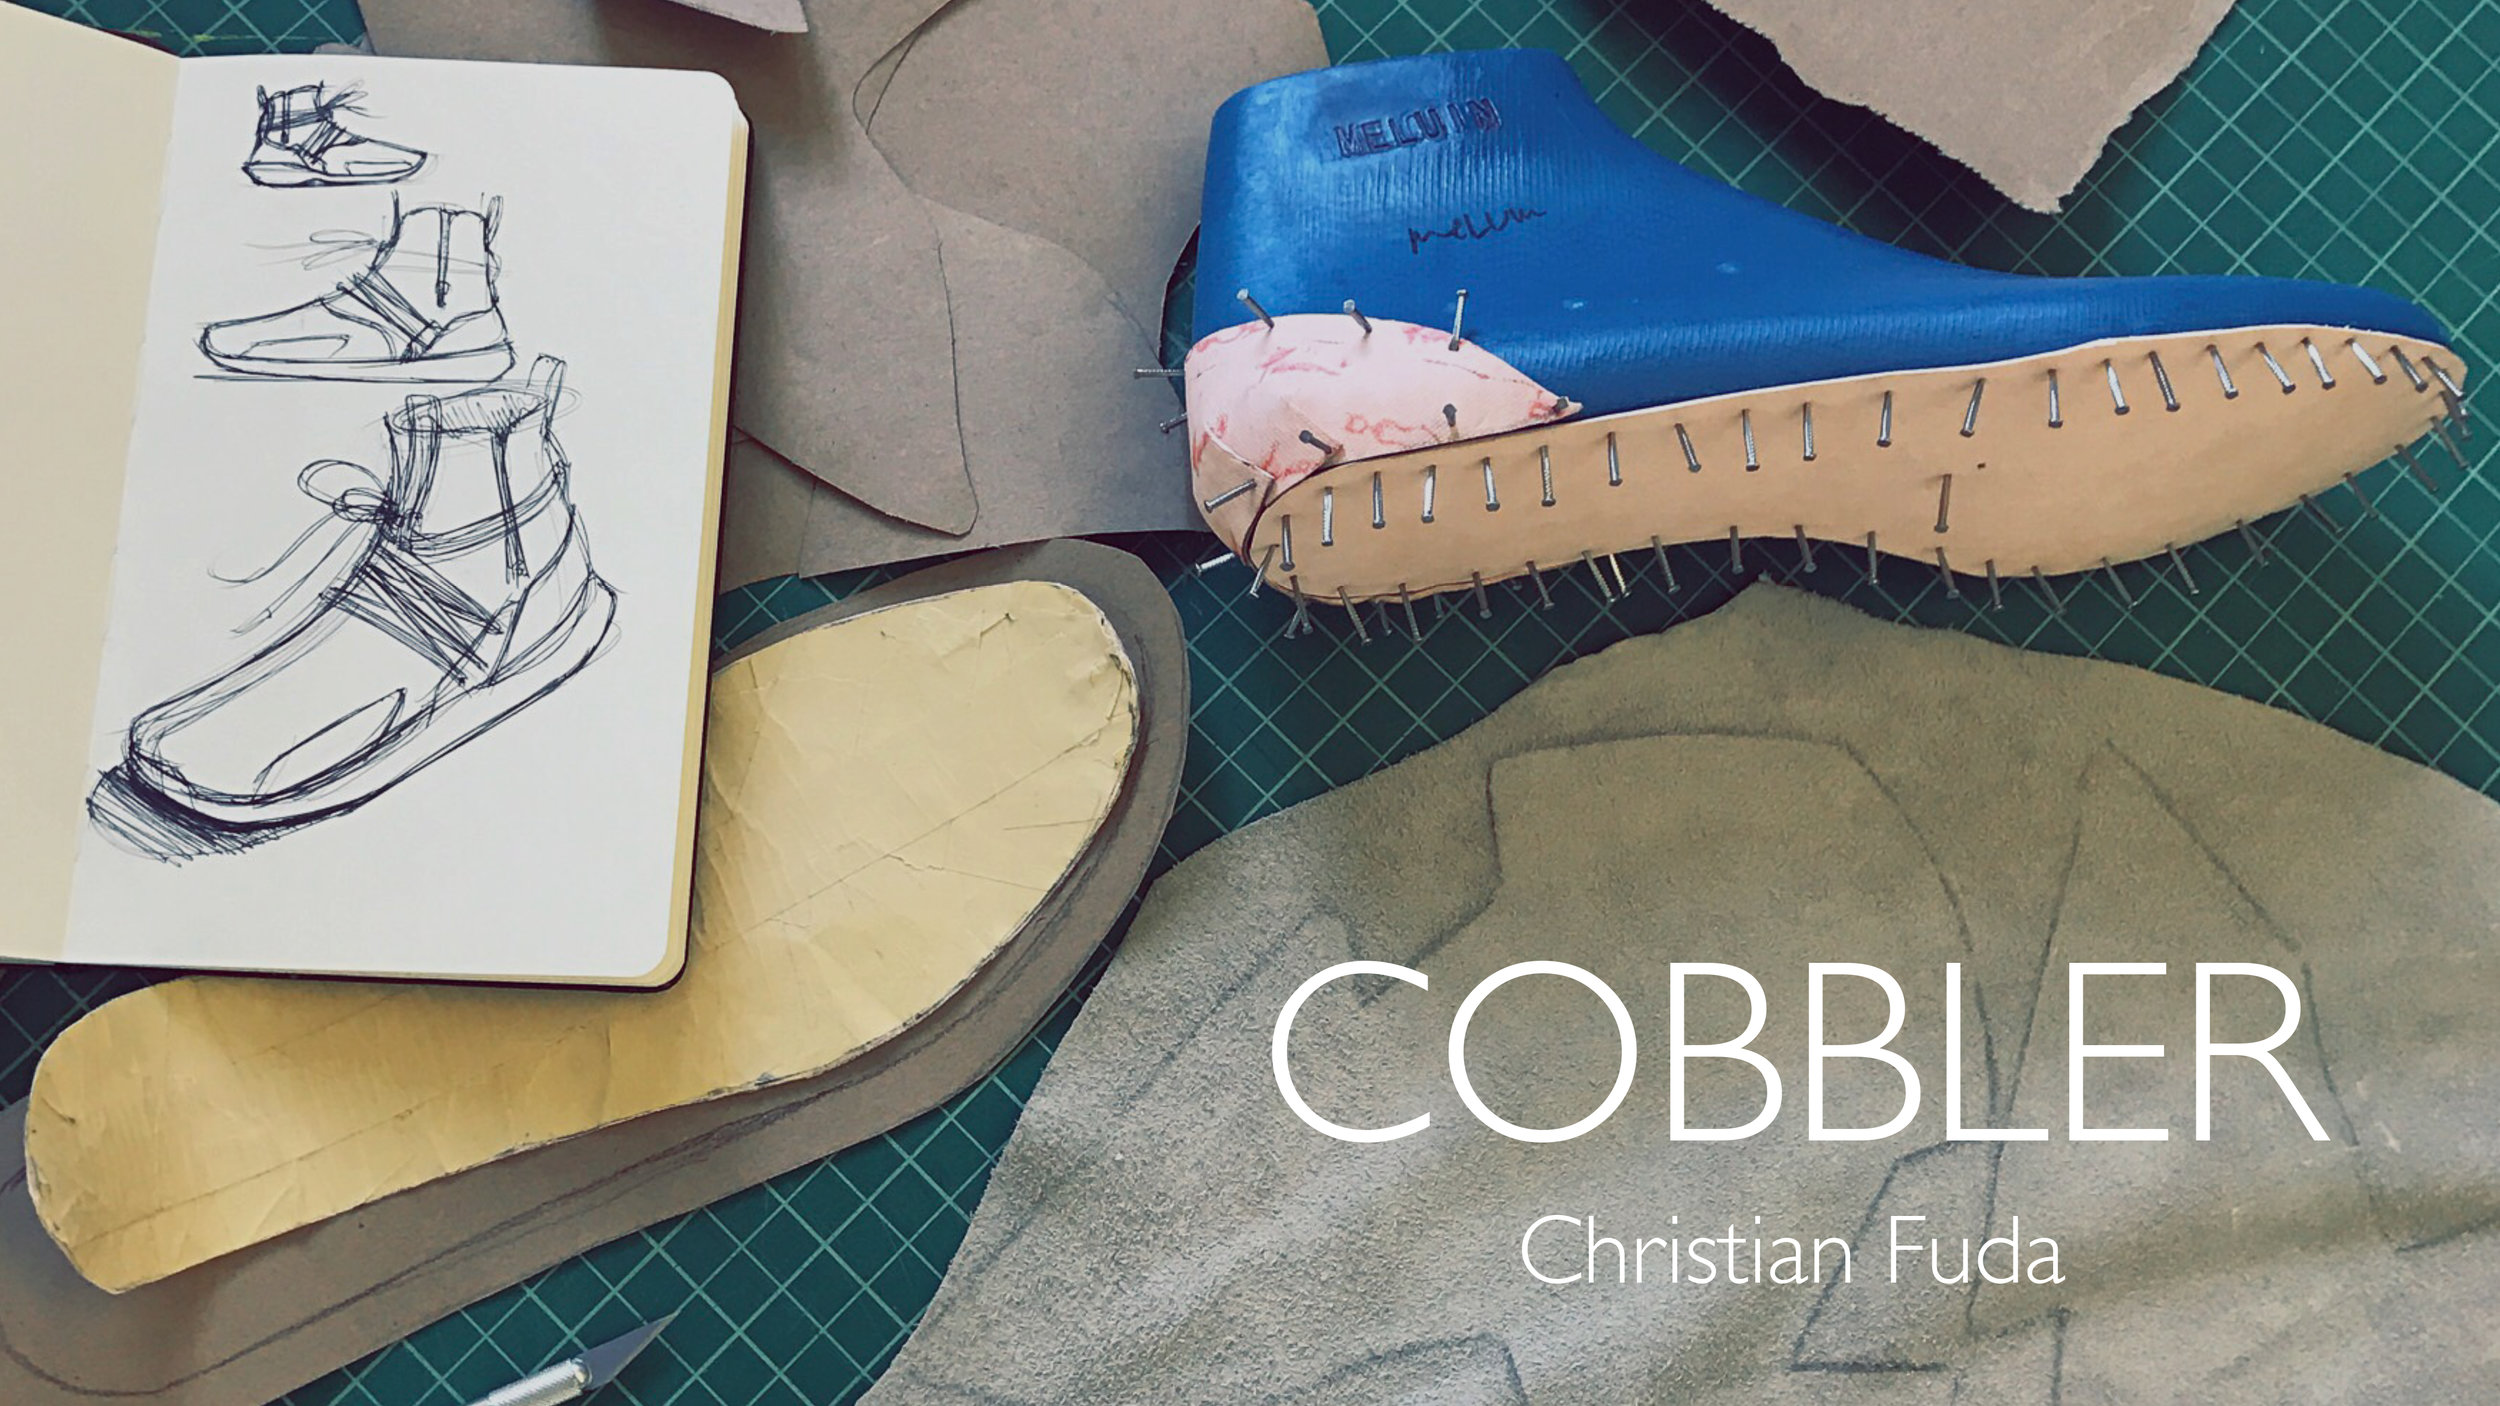 Fuda_Cobbler_Project-1.jpg